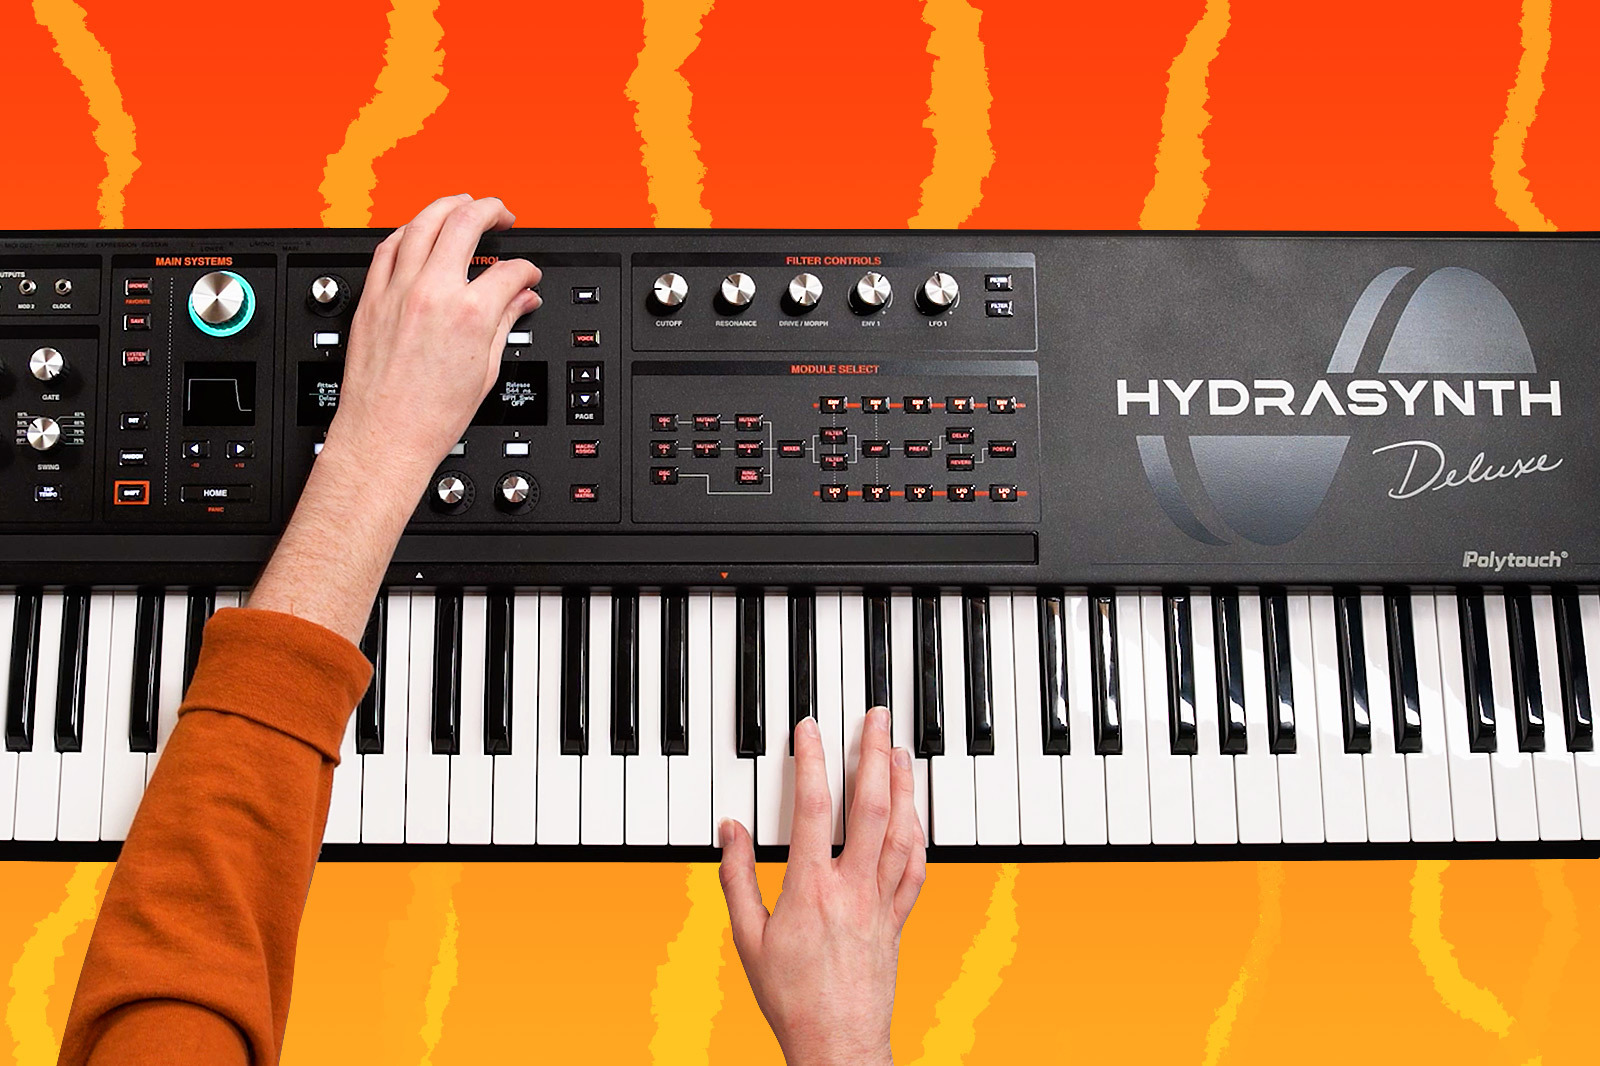 Hot Sound Design Tips for the ASM Hydrasynth